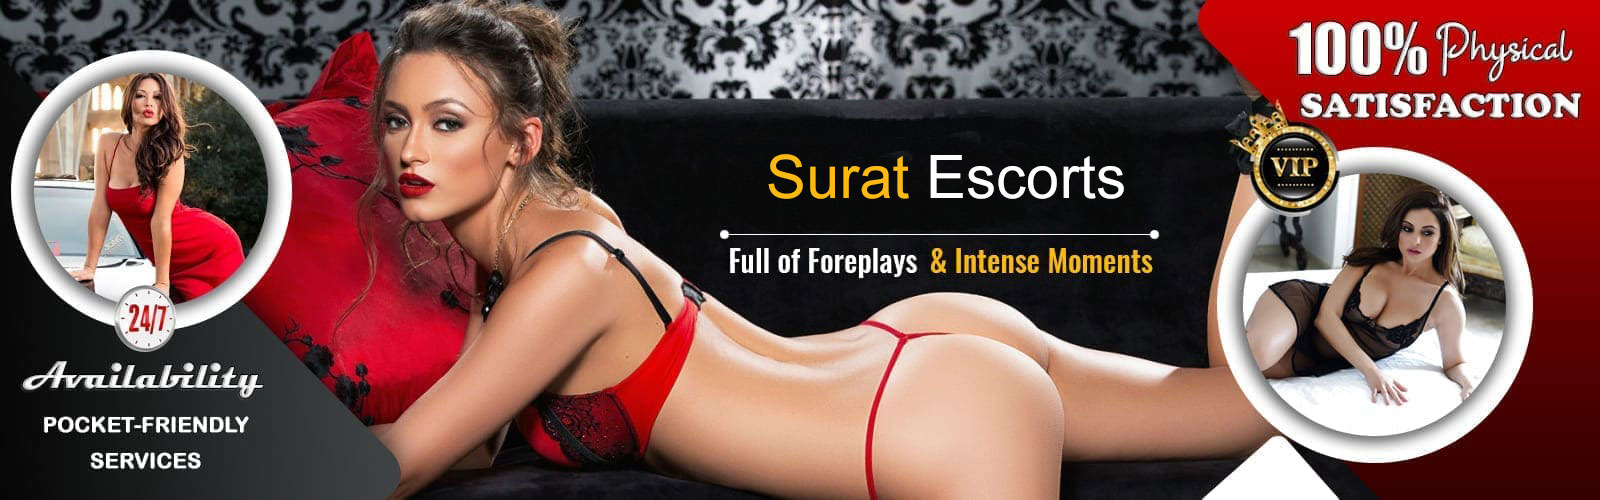 call girls, escorts services in surat